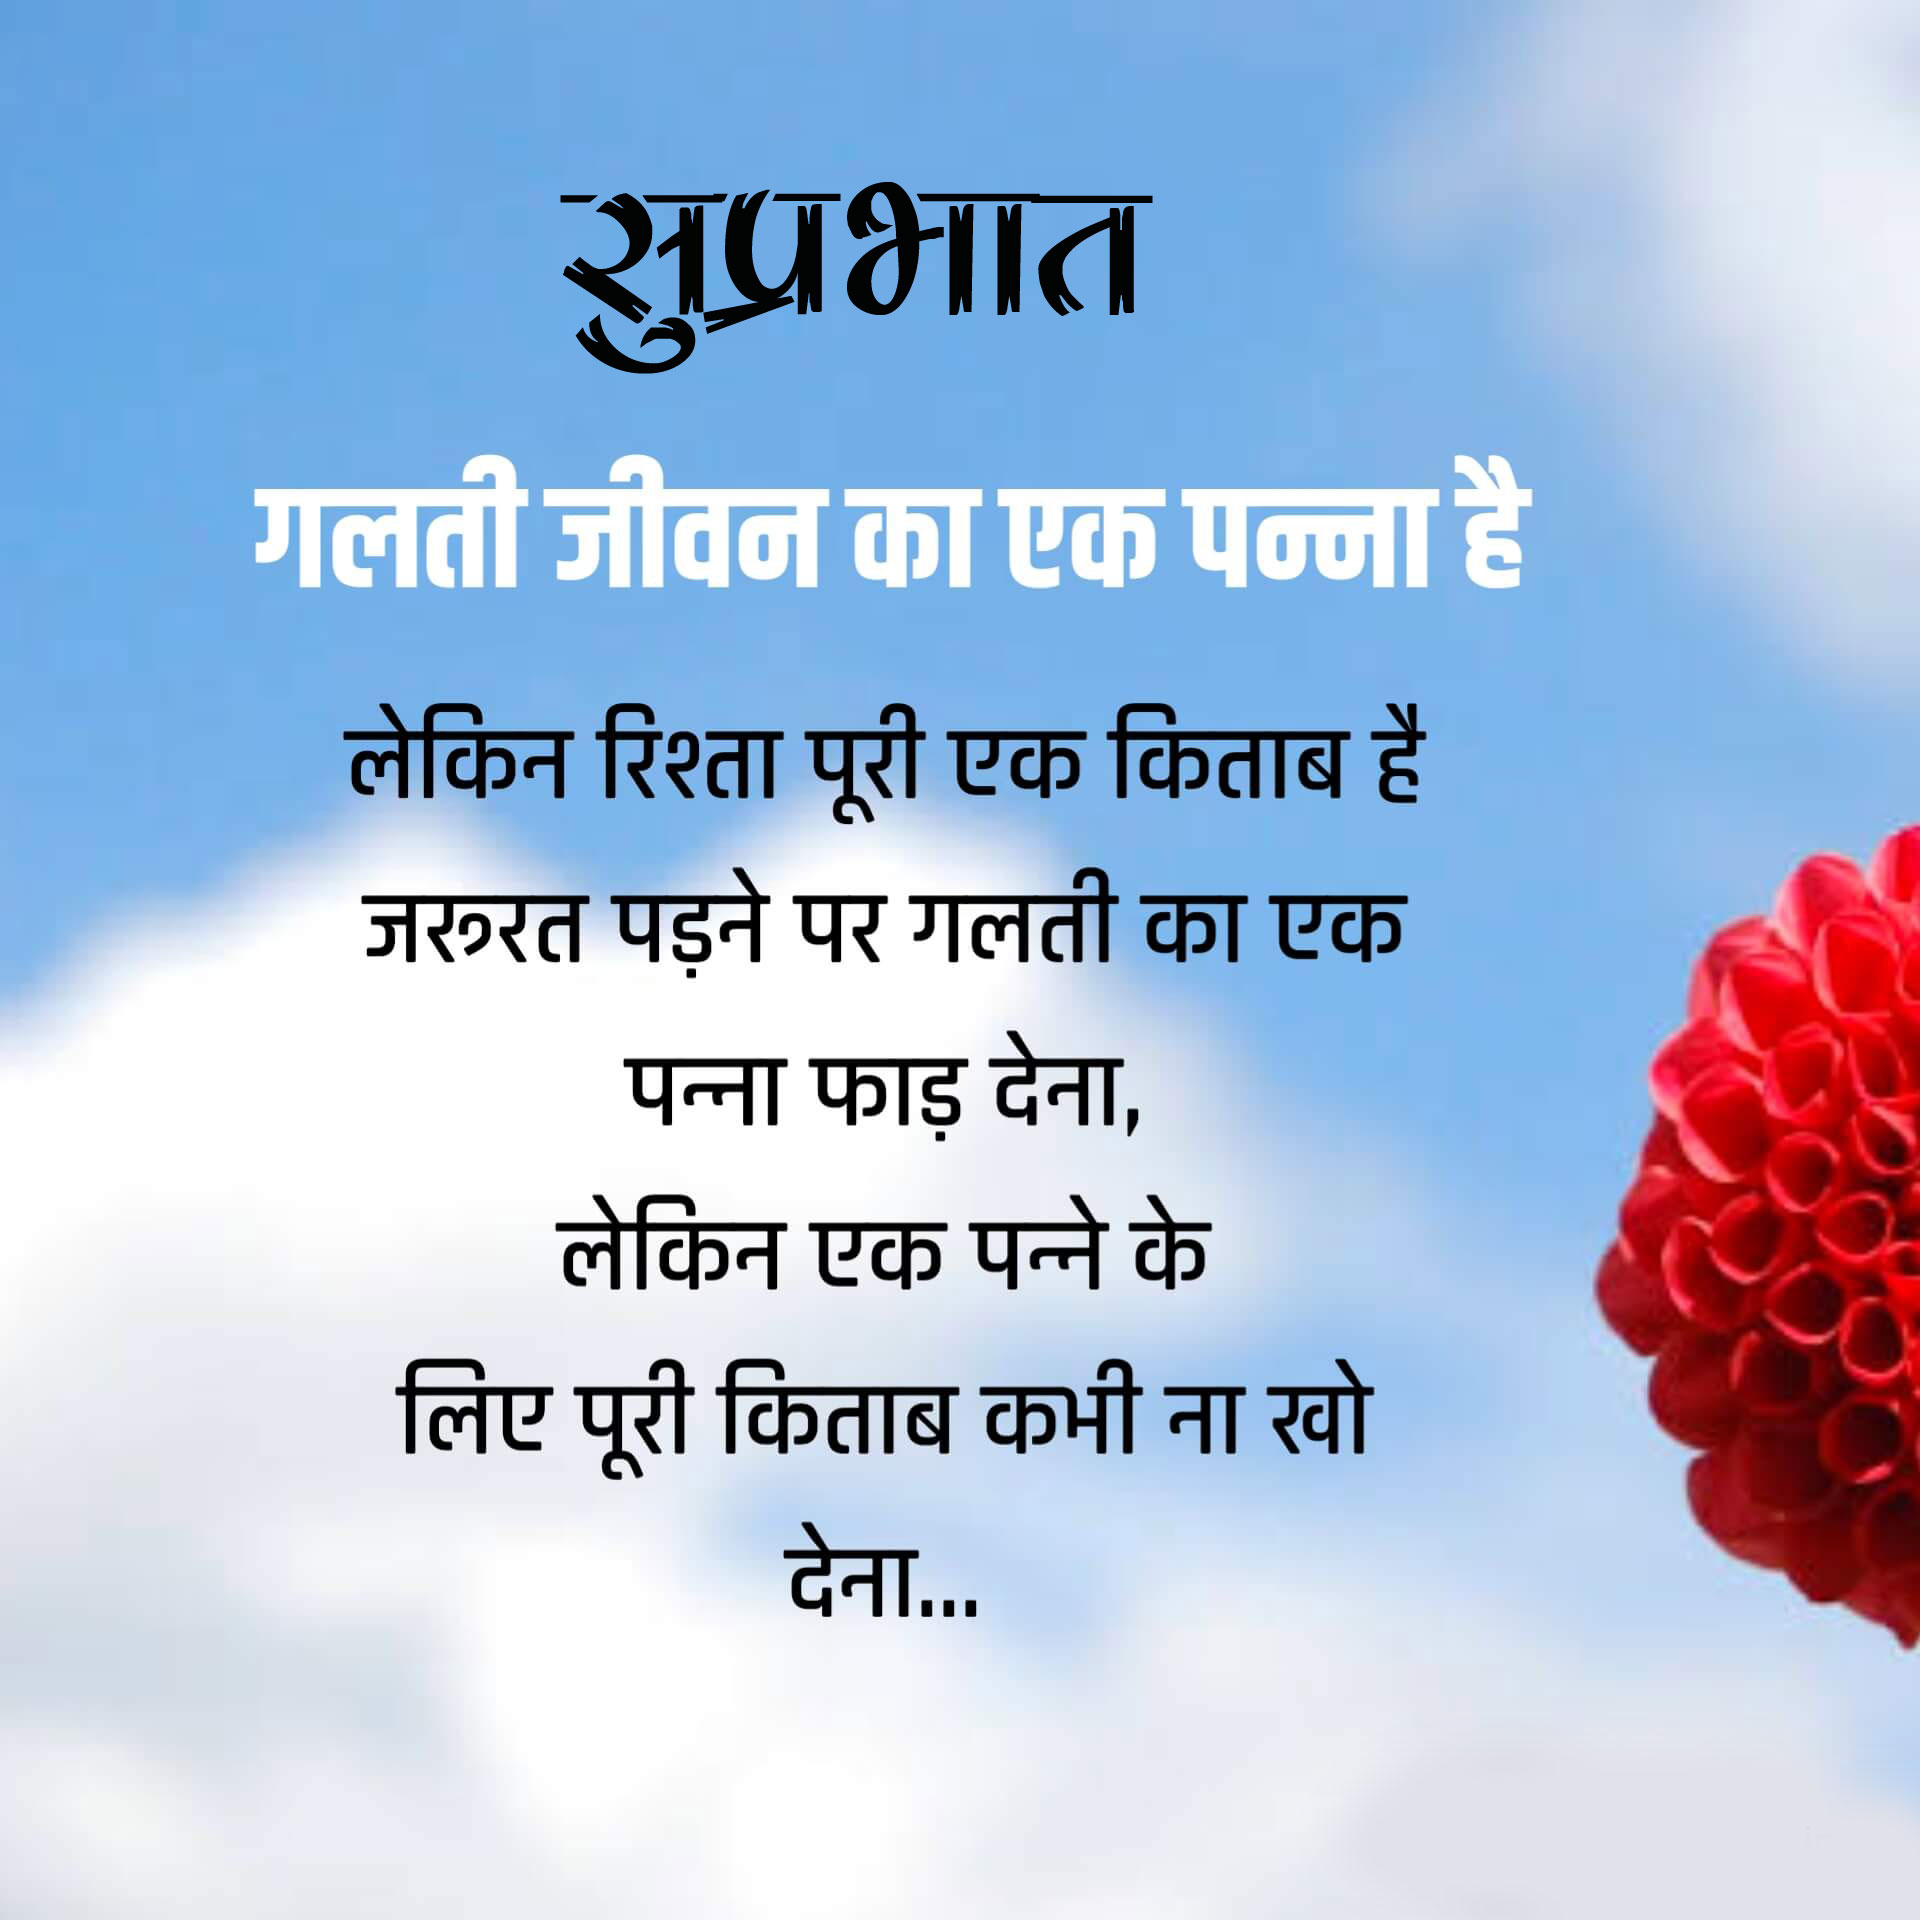 2021 Latest Suprabhat Images download